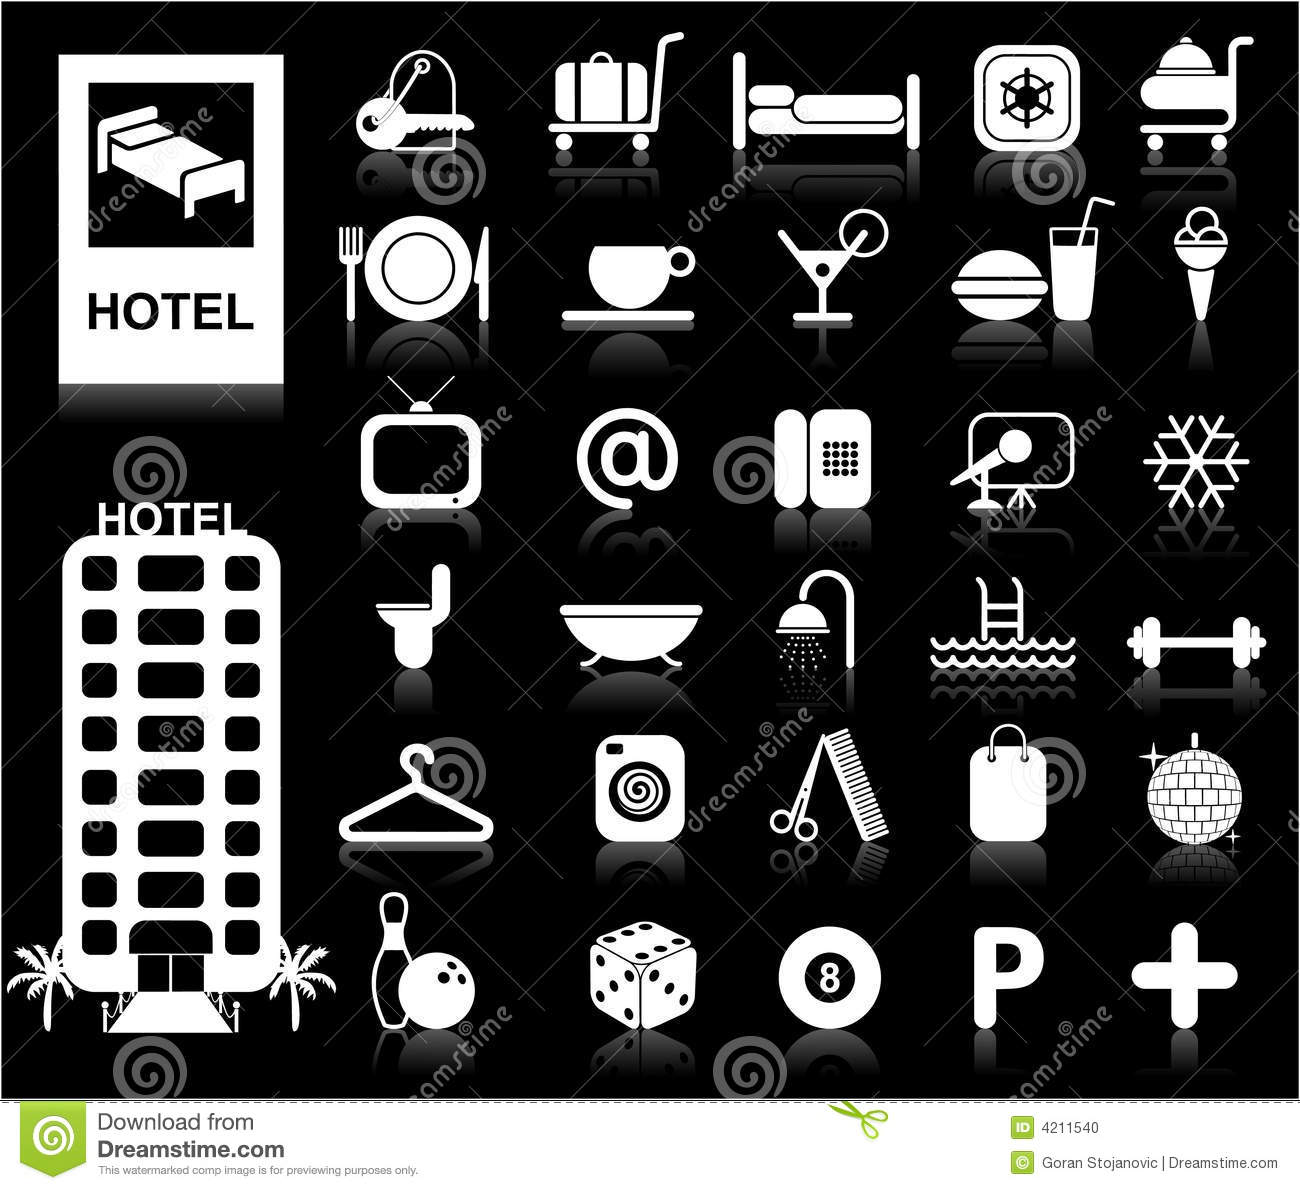 Hotel Icons set - Vector.